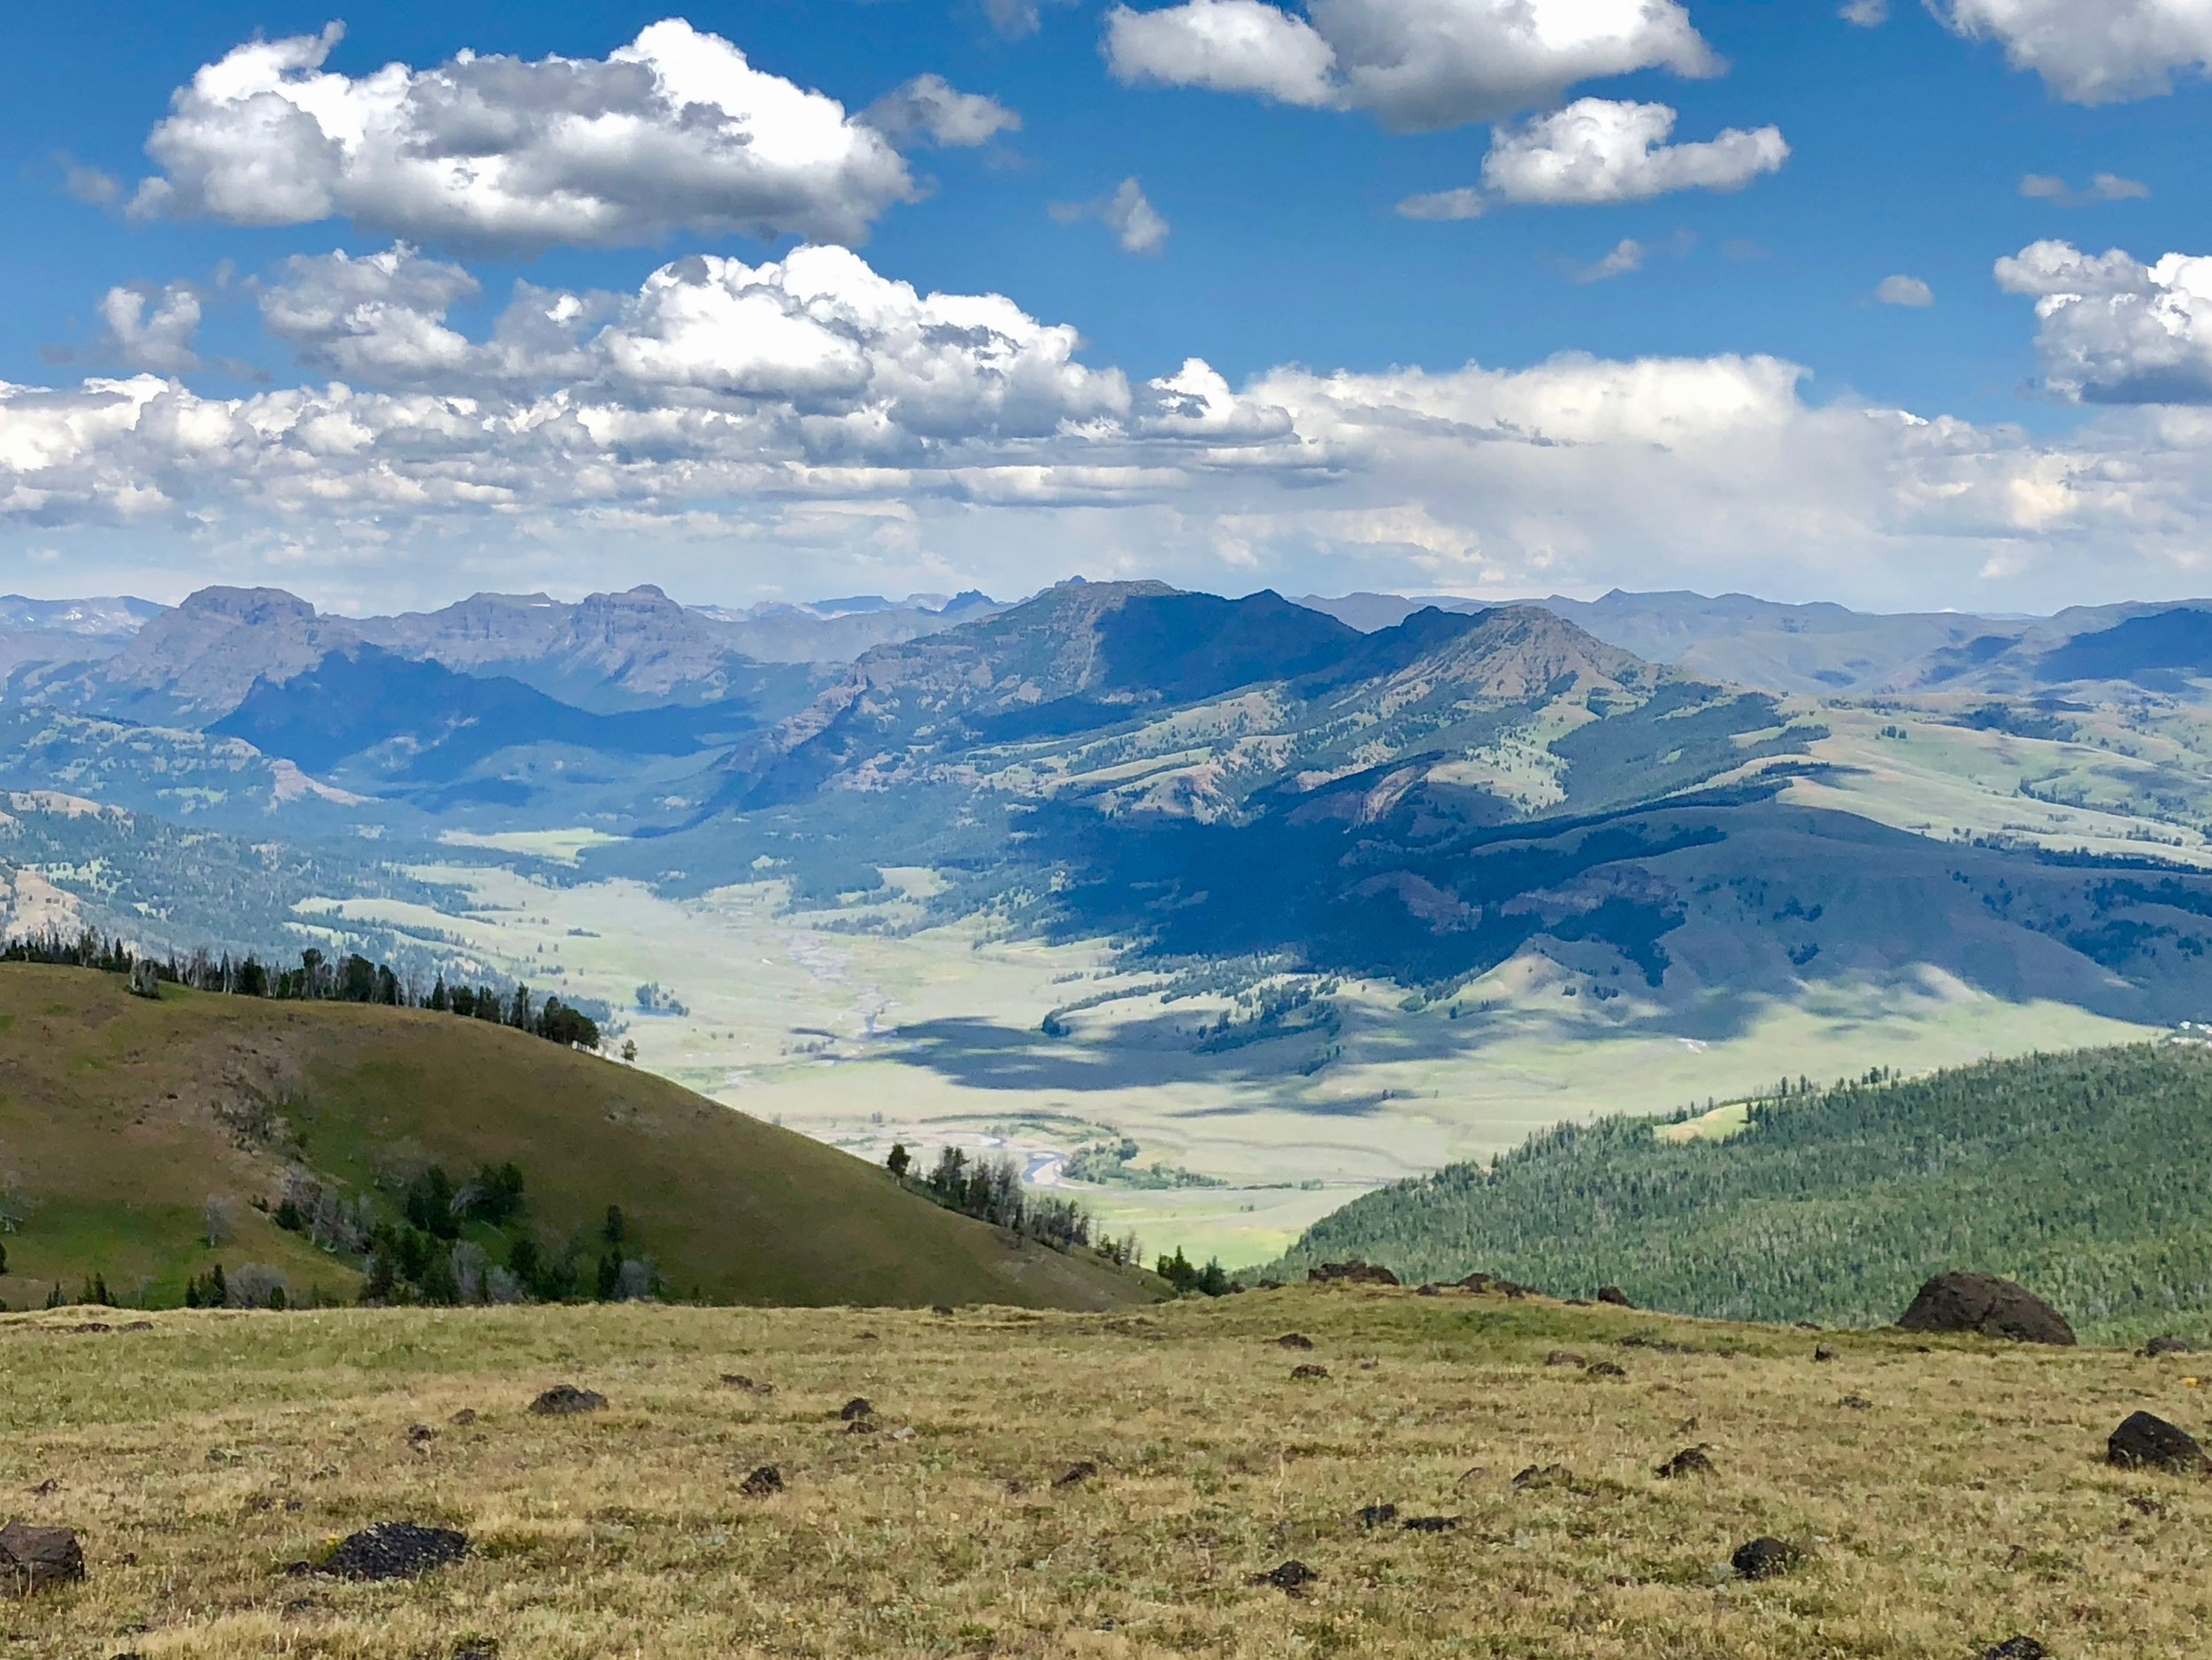 Freezing cold 80 mph winds. It felt like we were in a hurricane, but an amazing 360 degree vitsa. That's the Lamar Valley below, known as the Serengeti of Yellowstone, due to the abundance of wildlife